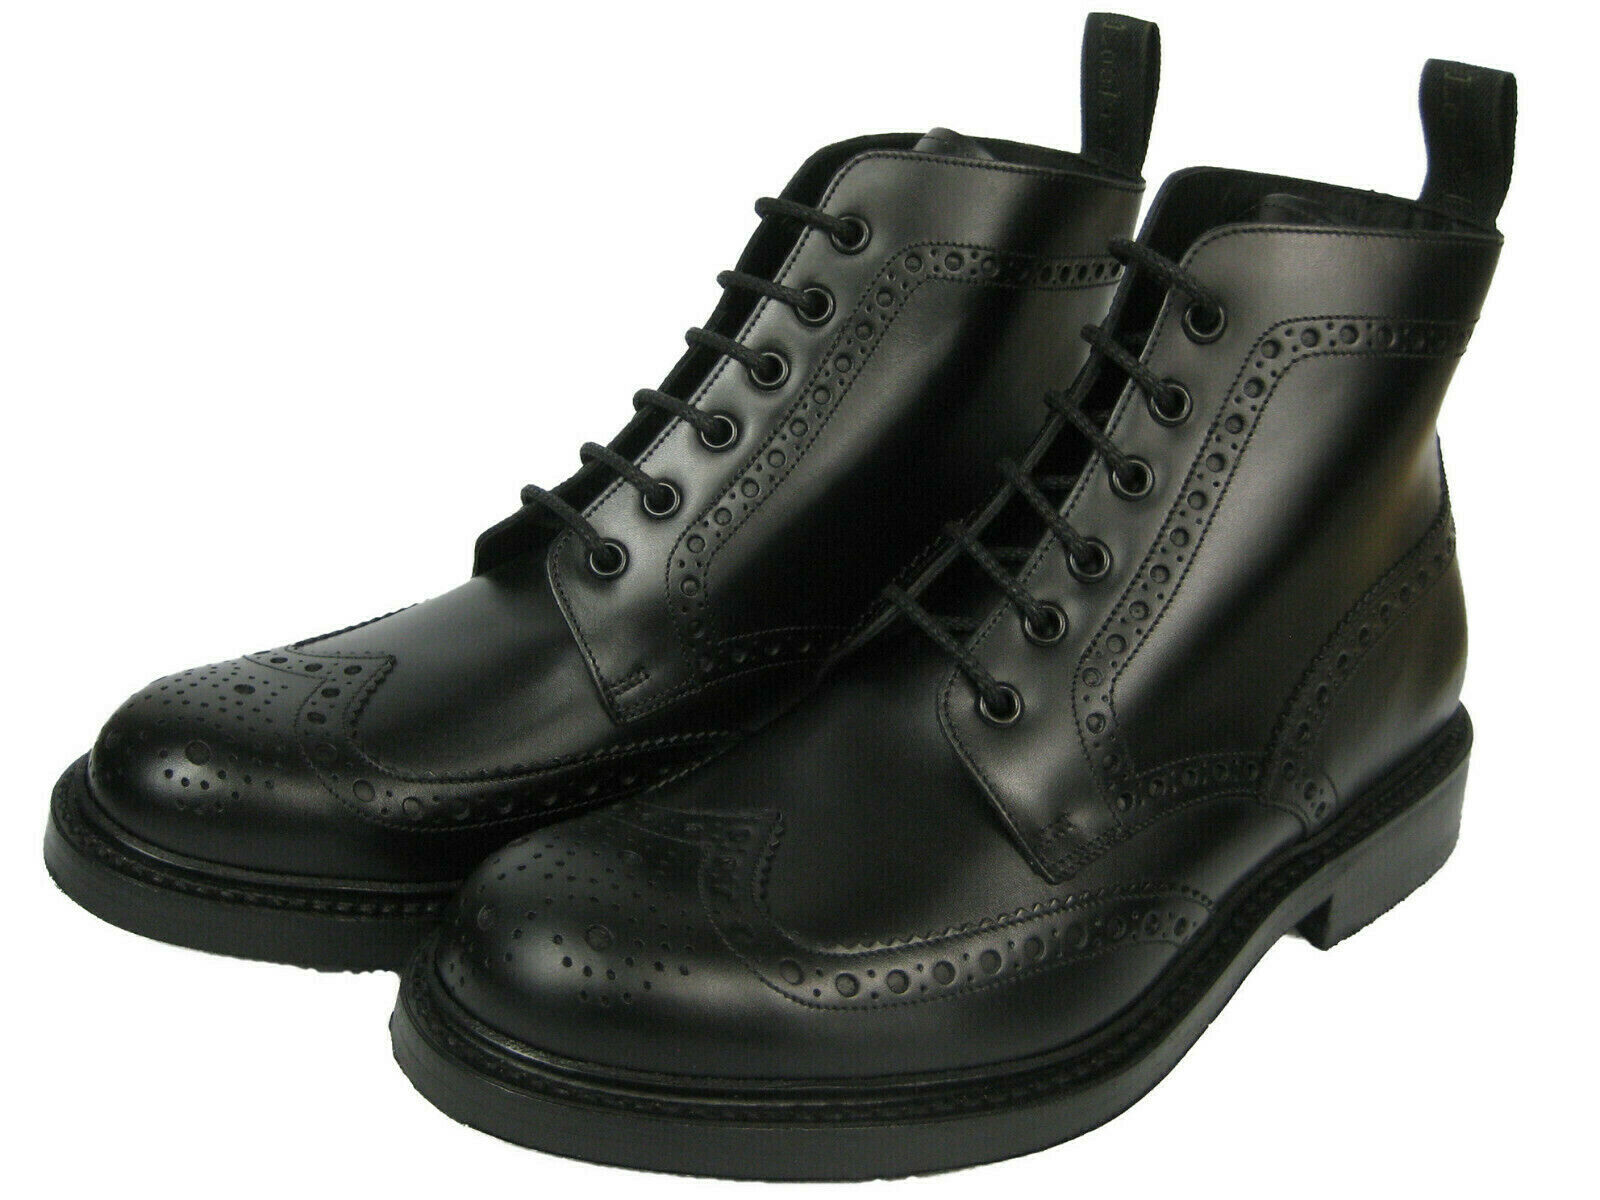 Loake BEDALE Leather Boots Shoes Brogue Boat Frame Sewn Budapest Black